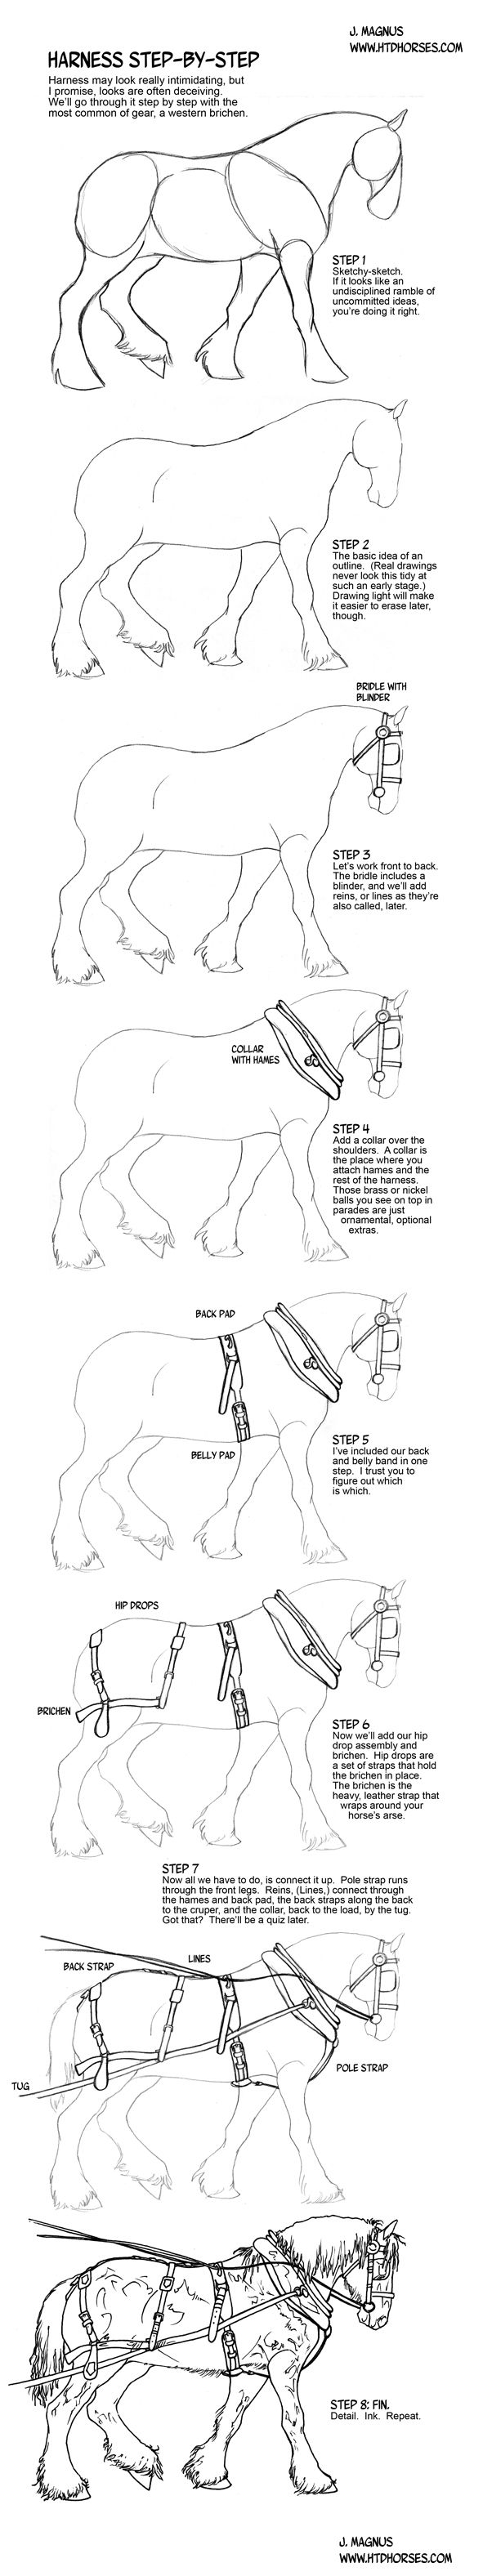 How To Draw A Horse In Harness By Sketcherjakiantart On @deviantart